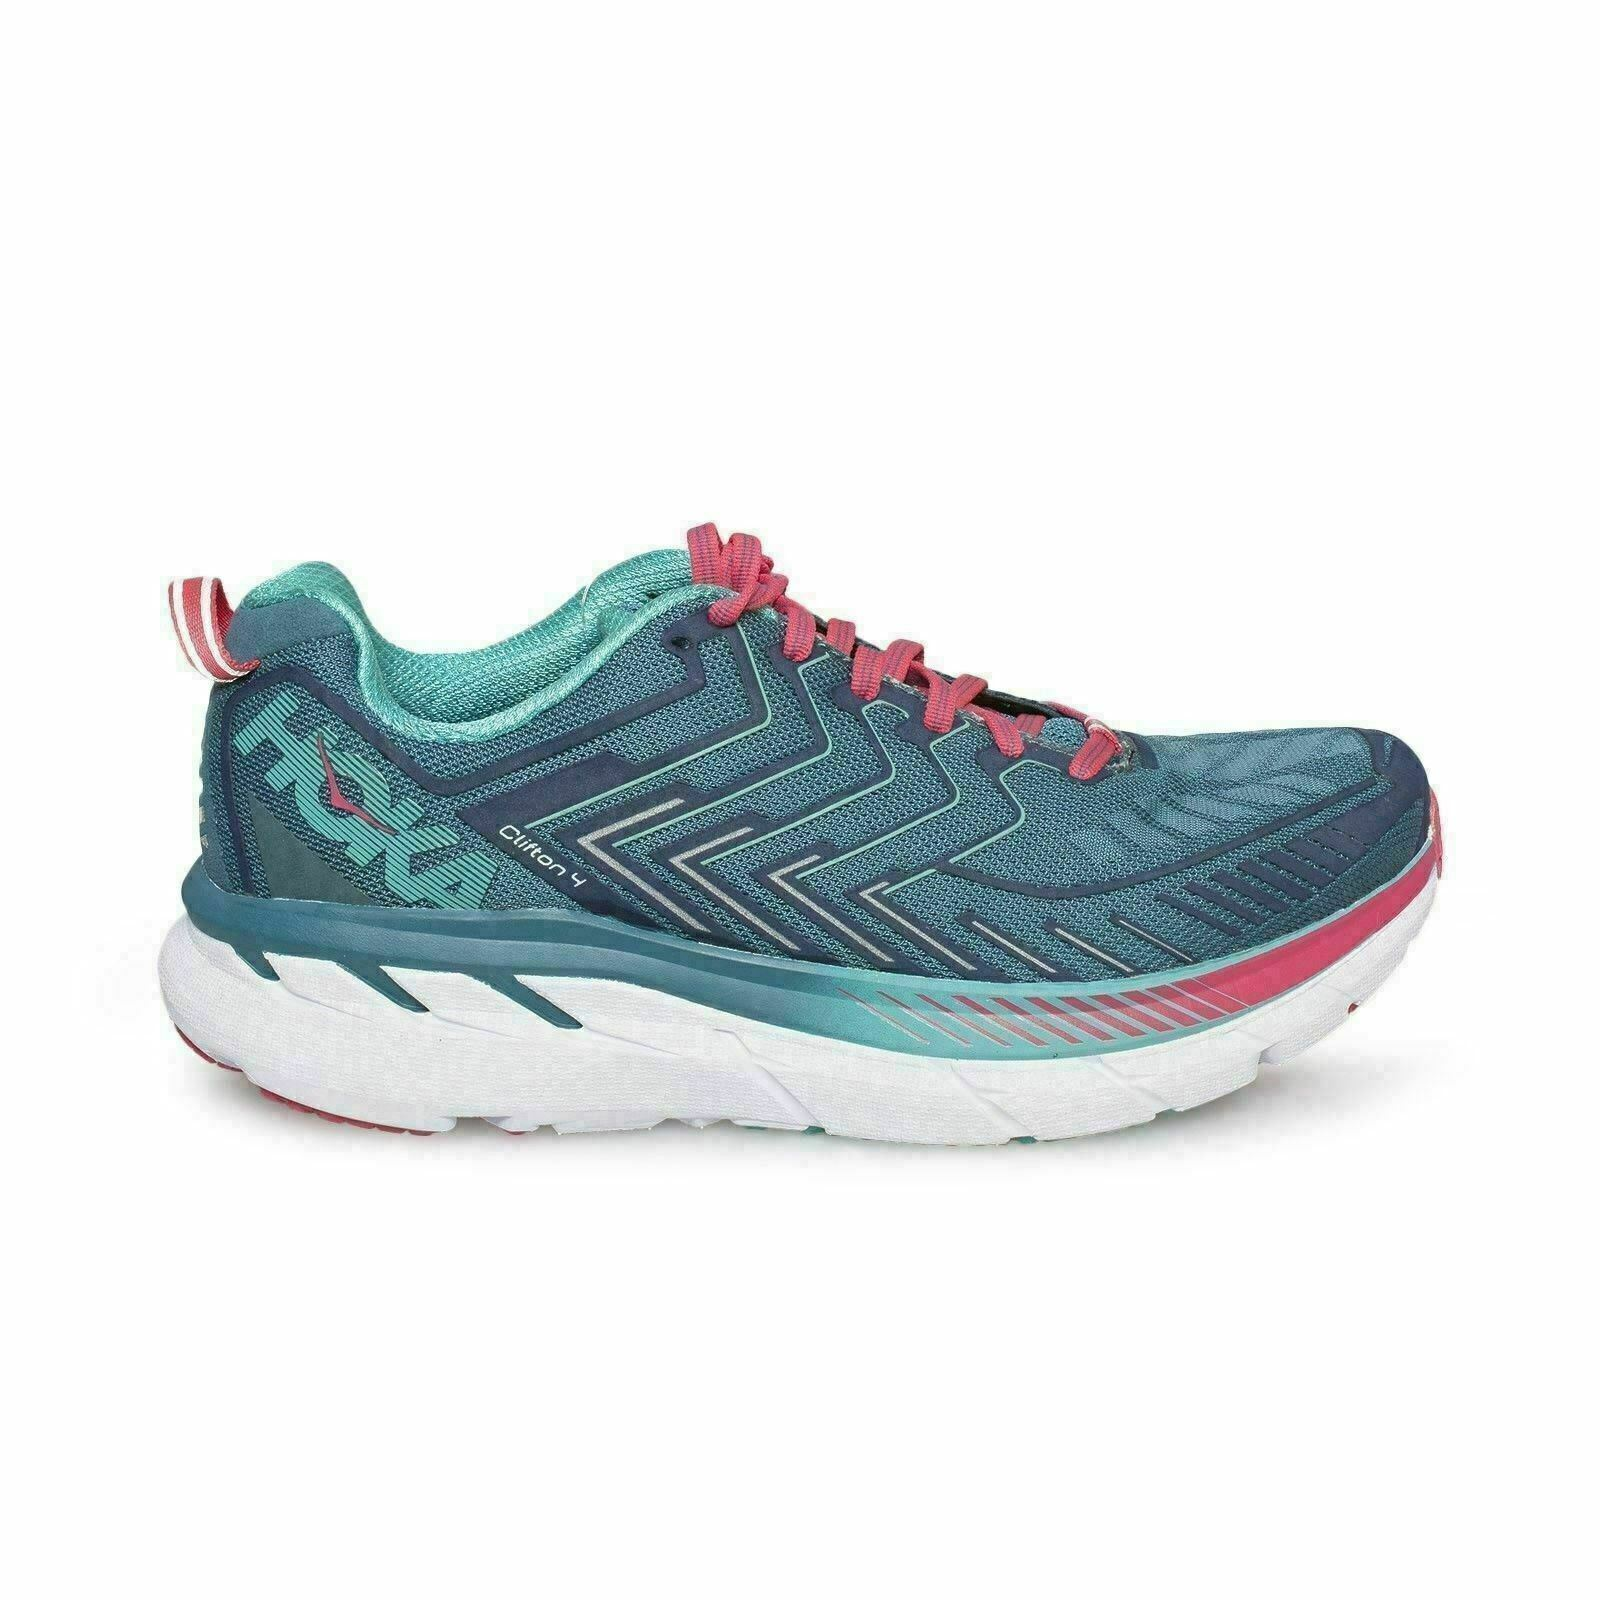 Hoka One One CLIFTON 4 Ancho Azul Coral Cerámica running mujer zapatos de EE. UU.